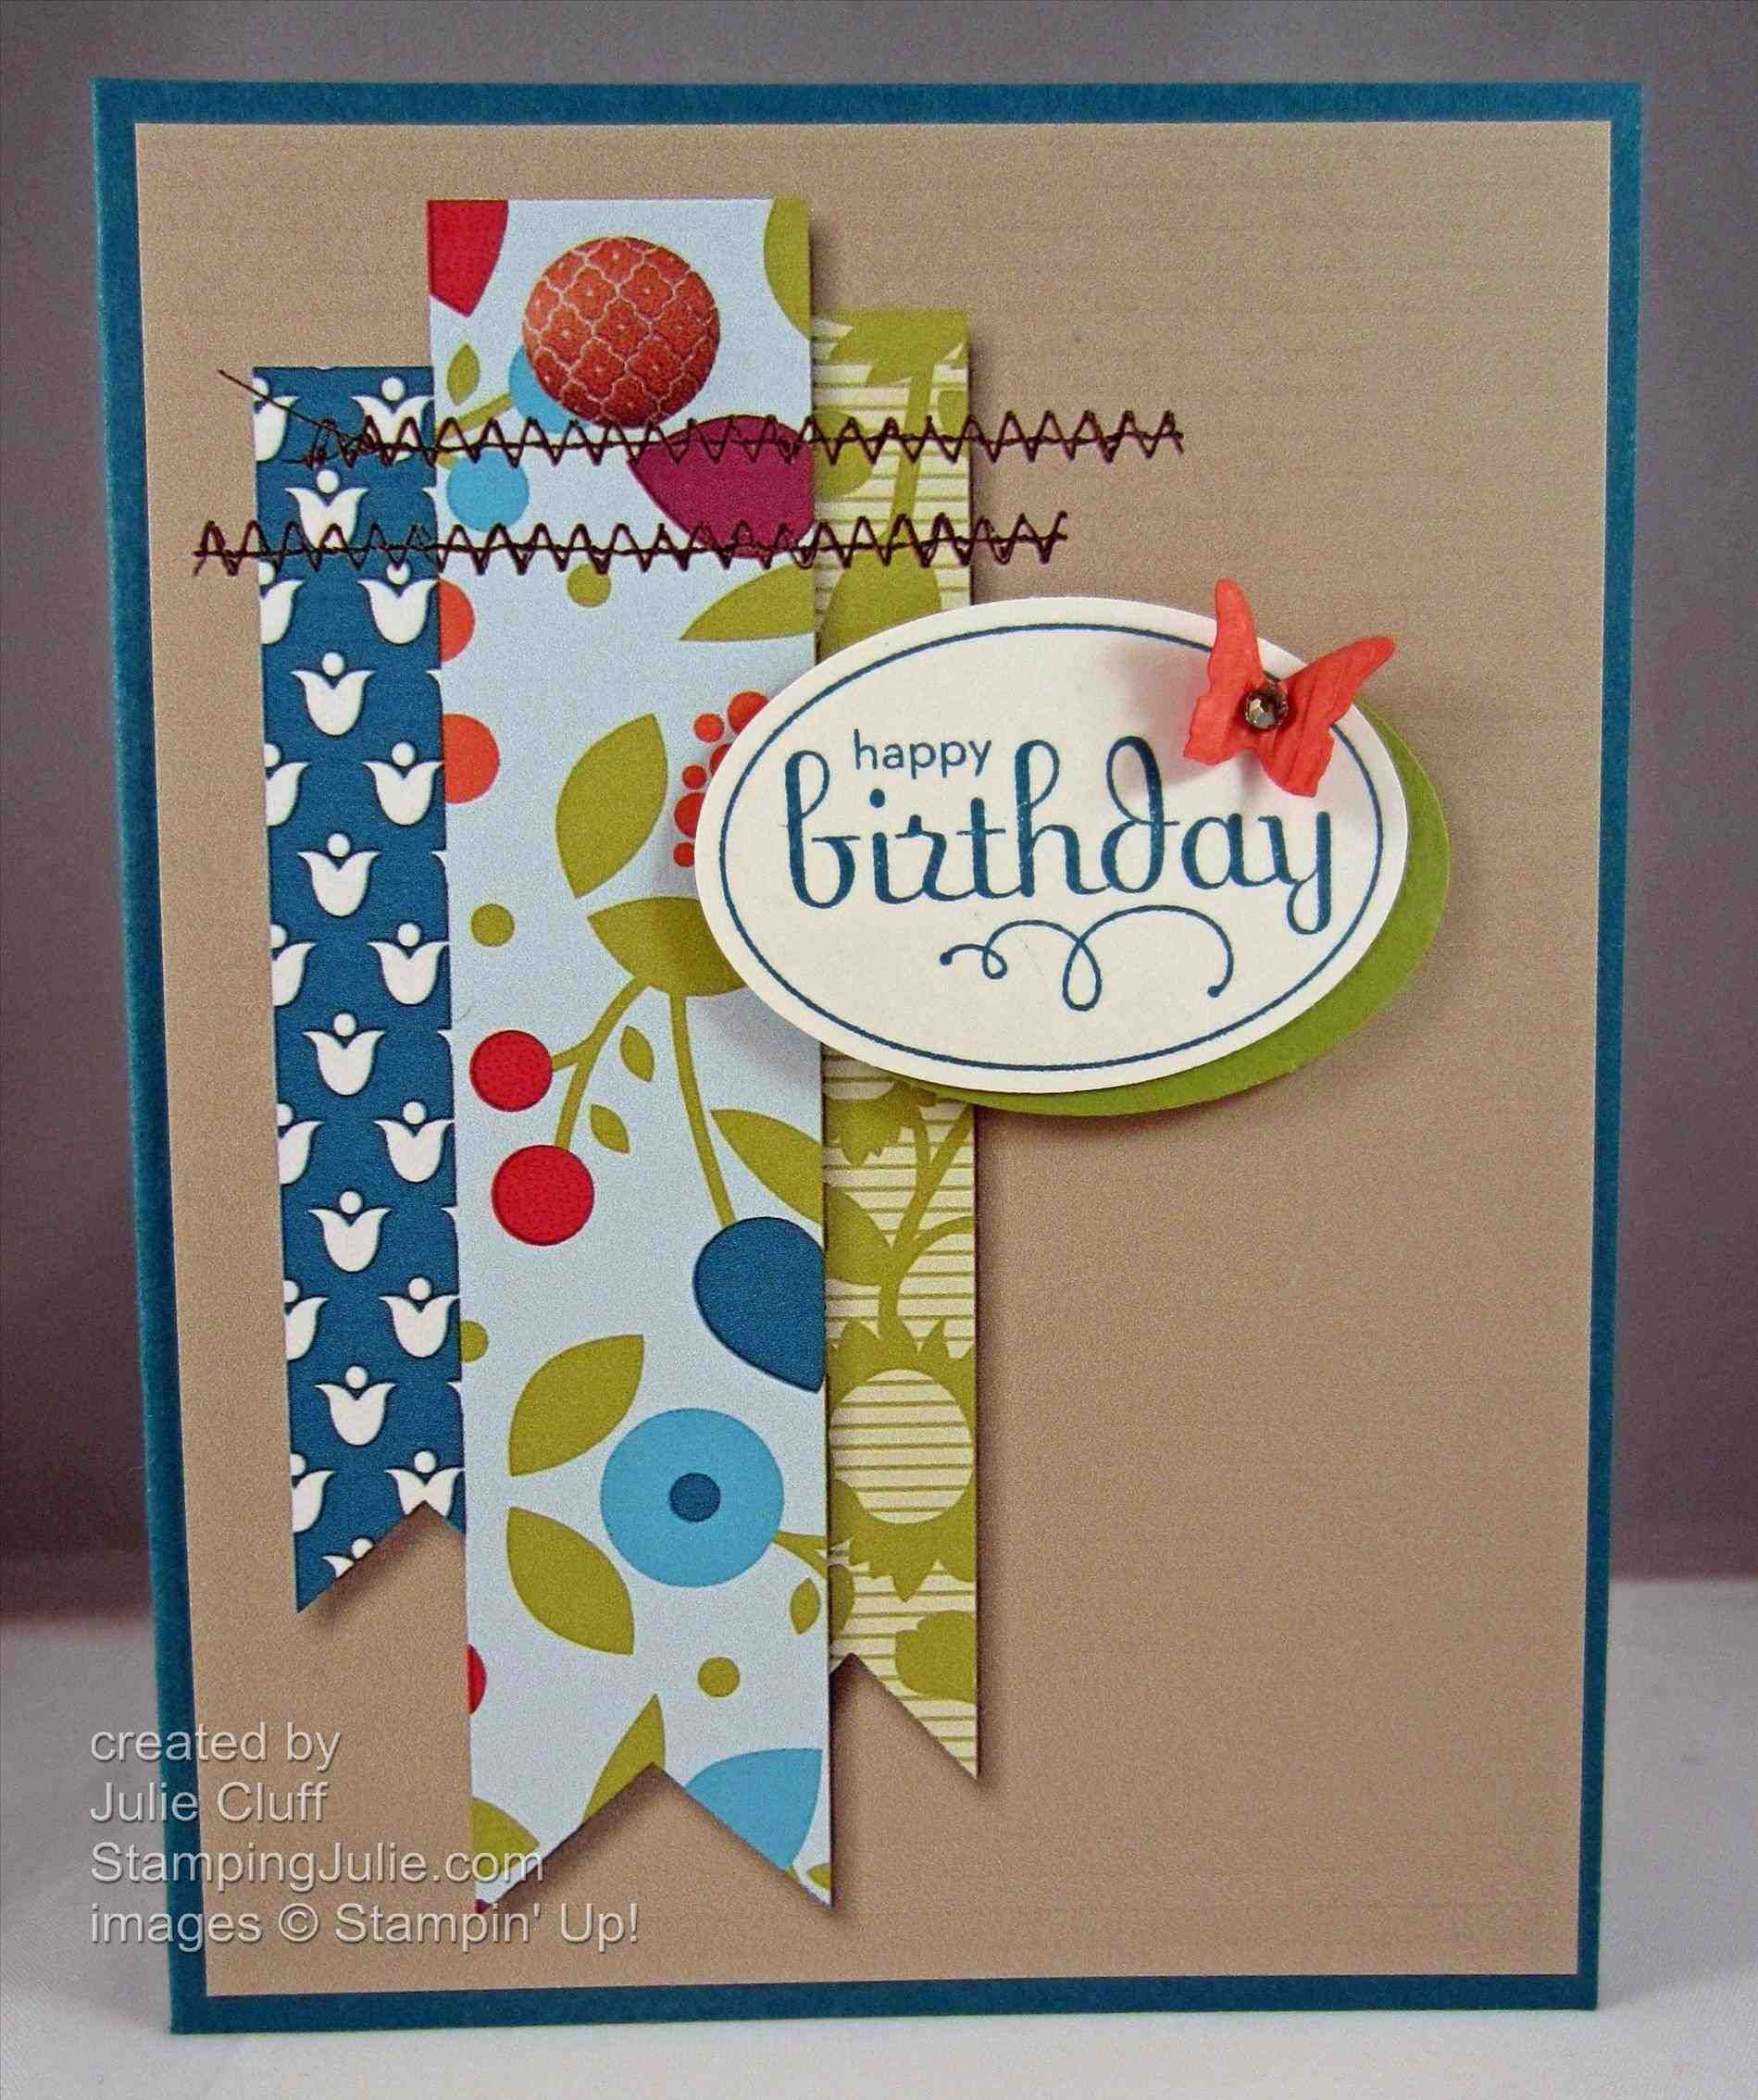 Cute Birthday Cards For Mom To Get Ideas How To Make Your Own